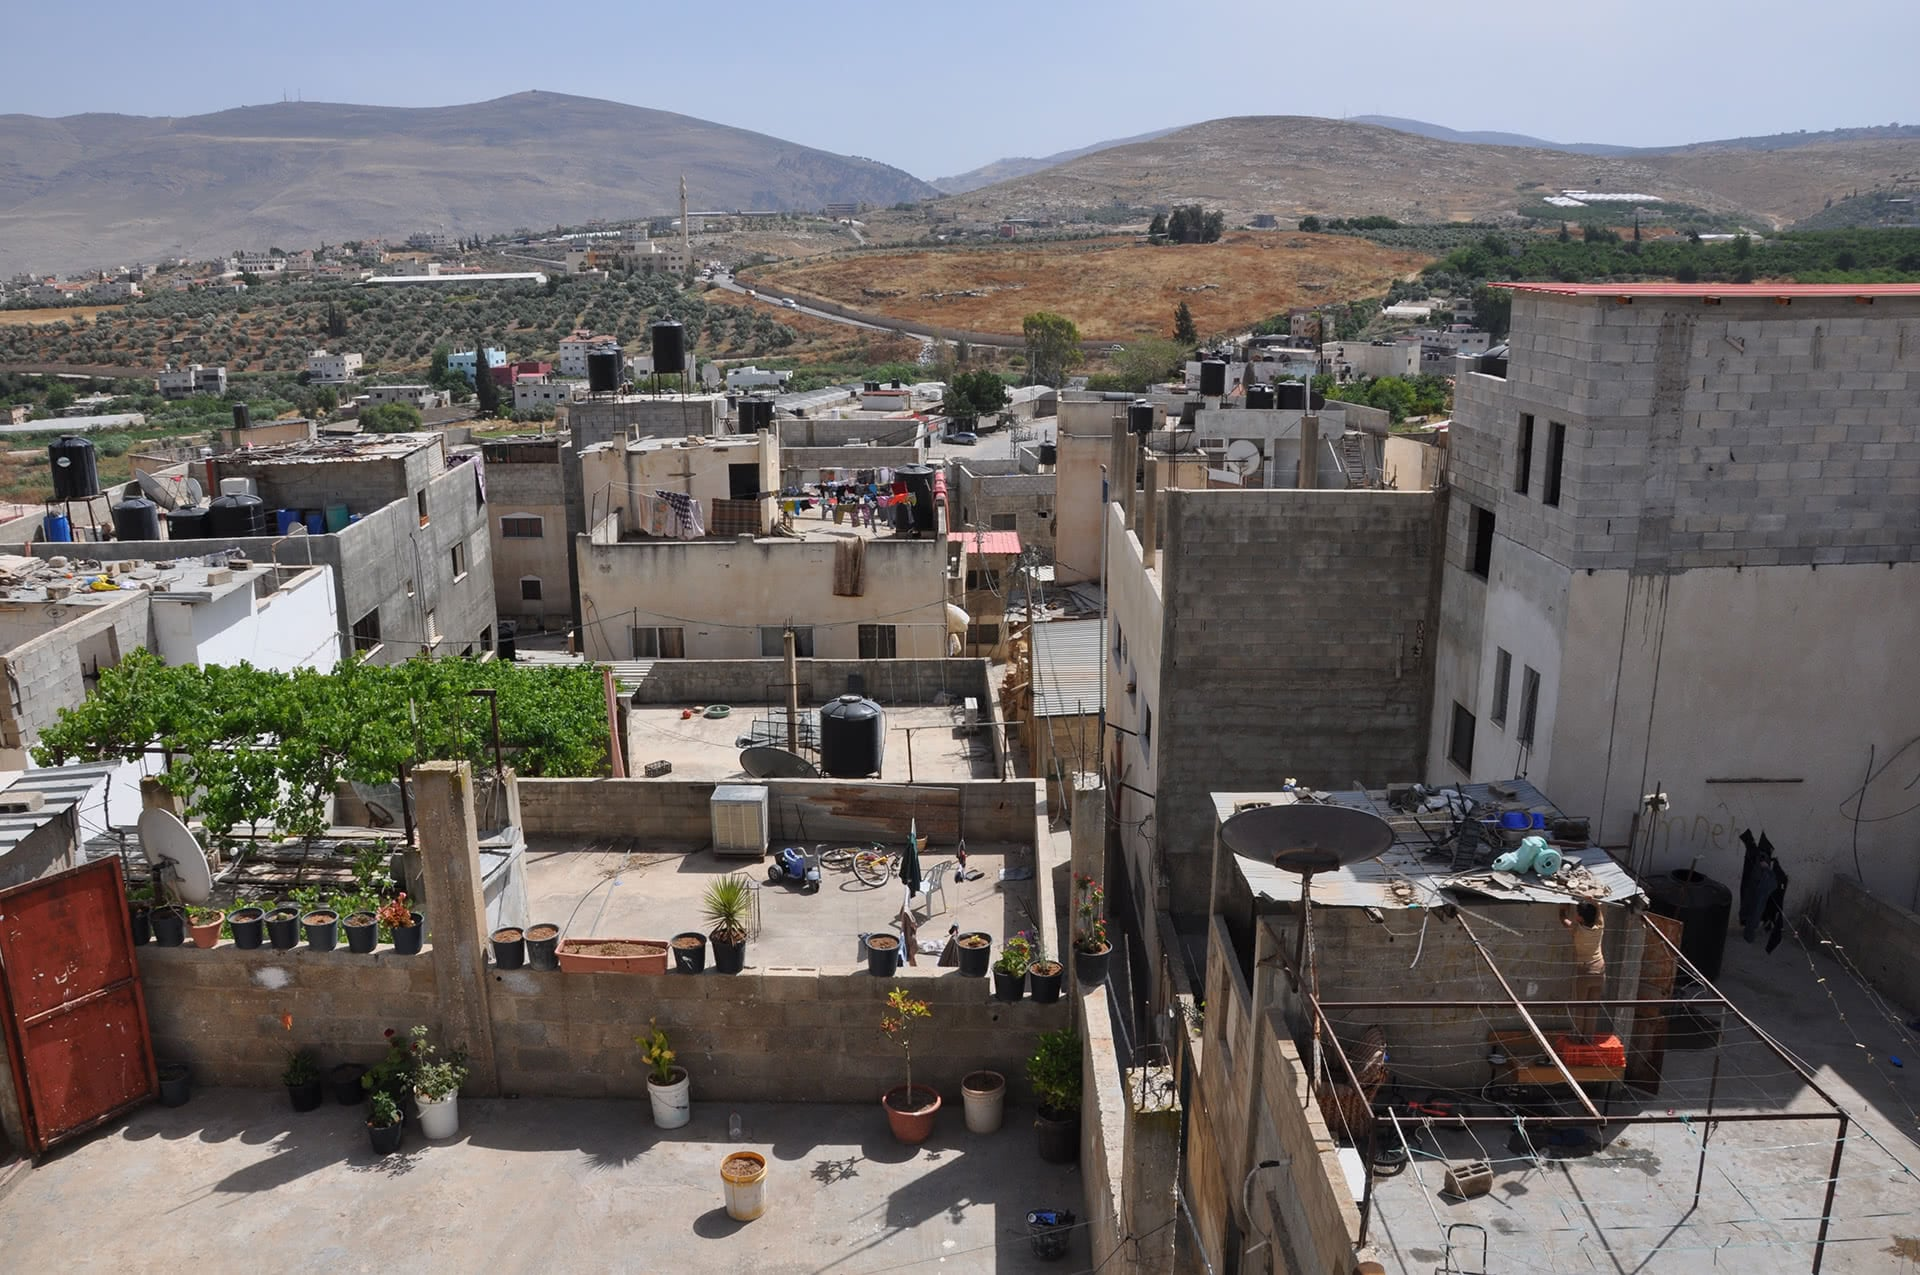 Privately-owned agricultural fields surround Fara'a refugee camp. (Photo: DCIP / Emily Thomas)